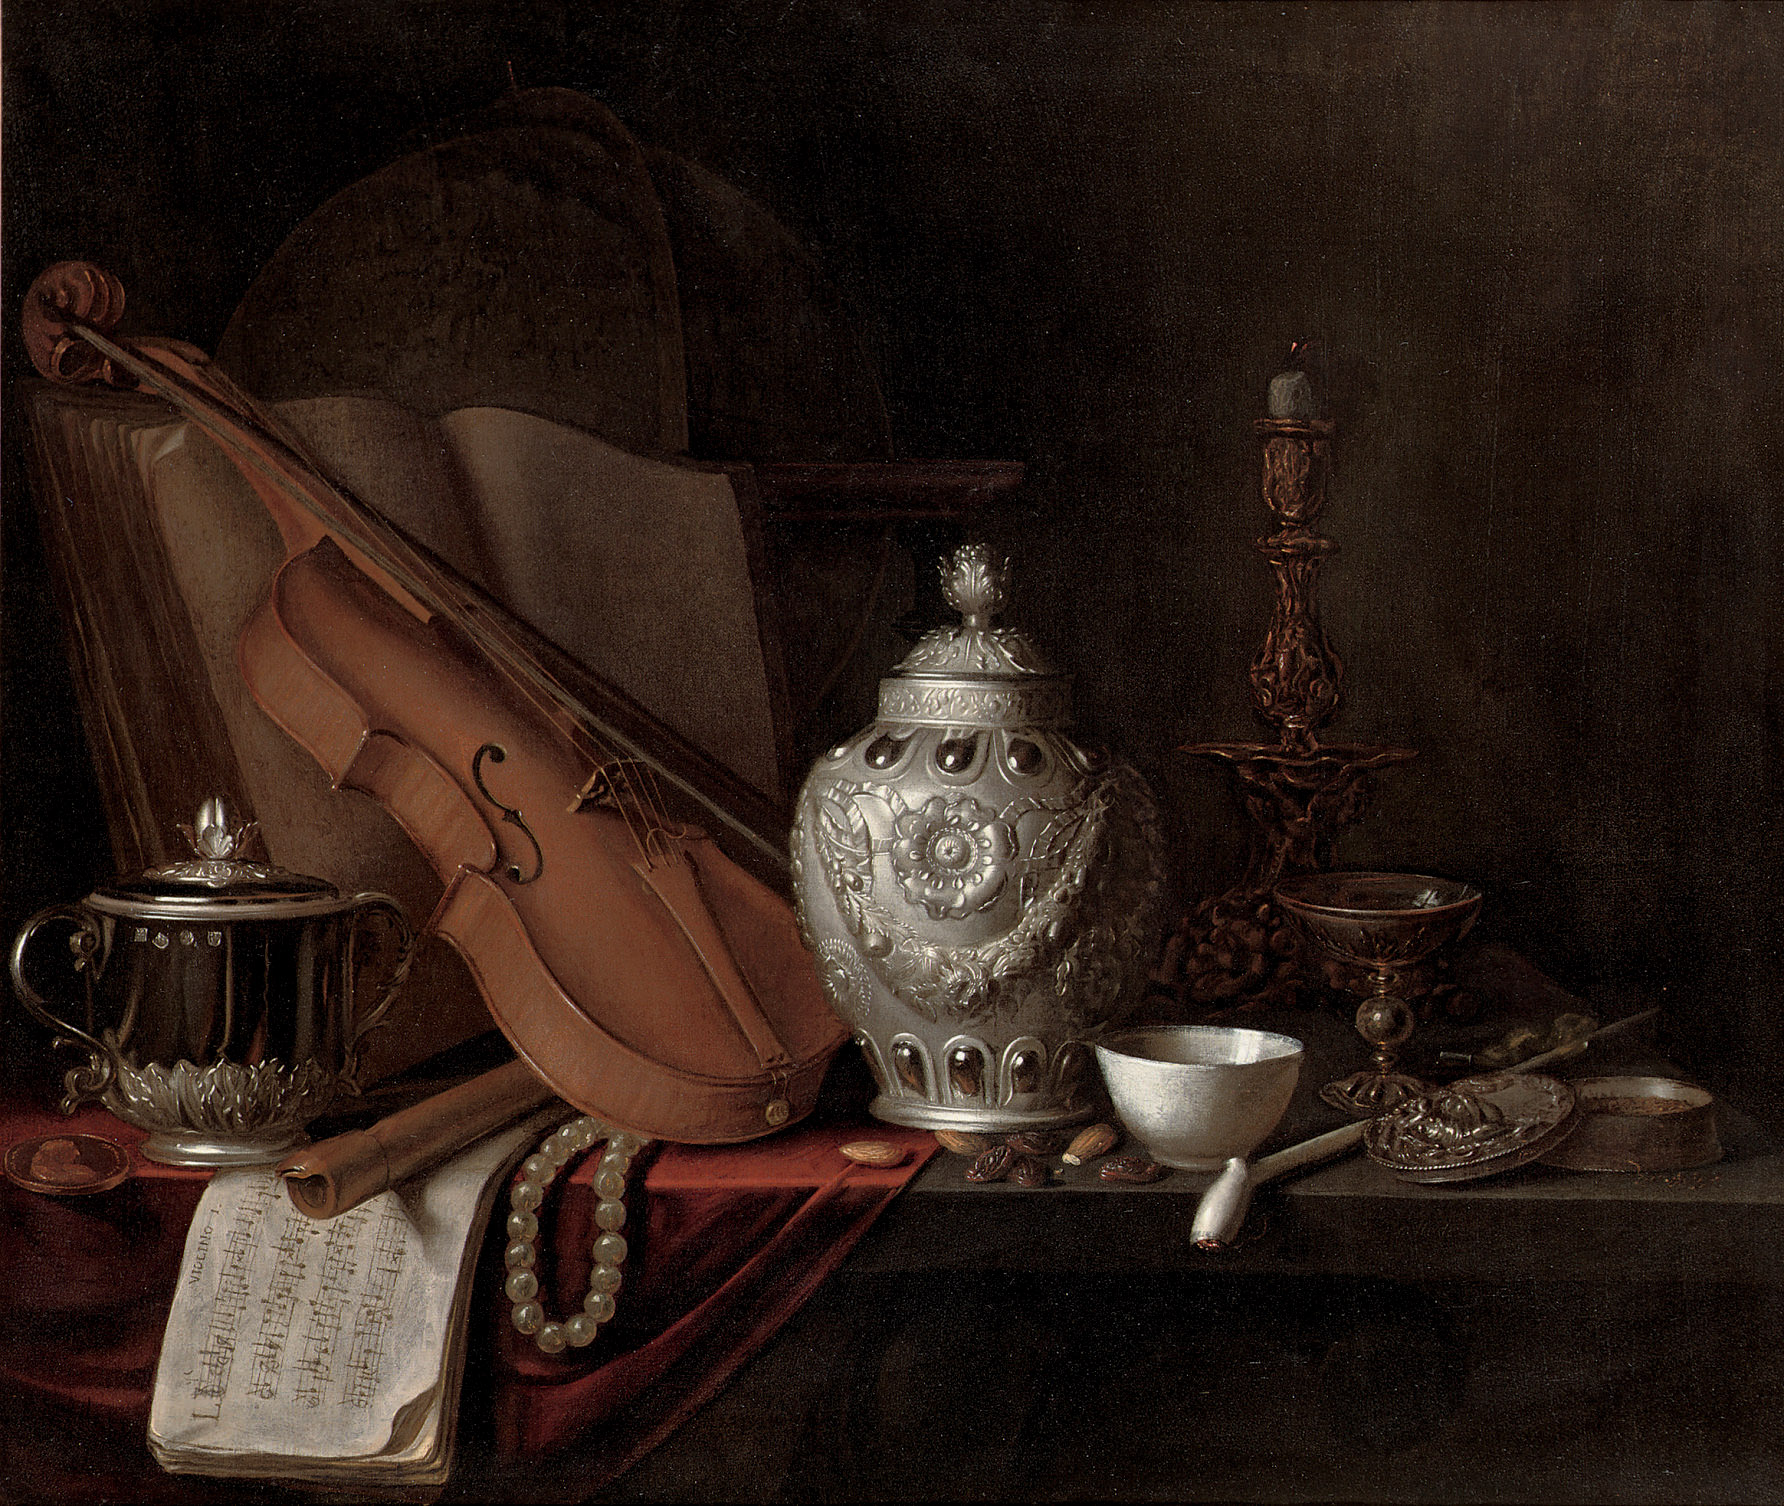 A silver ginger jar, a violin, a silver porringer, a globe, a pearl necklace, a gilt candlestick, a porcelain bowl, a pipe, a silver box, music sheet and almonds, all on a partly draped table